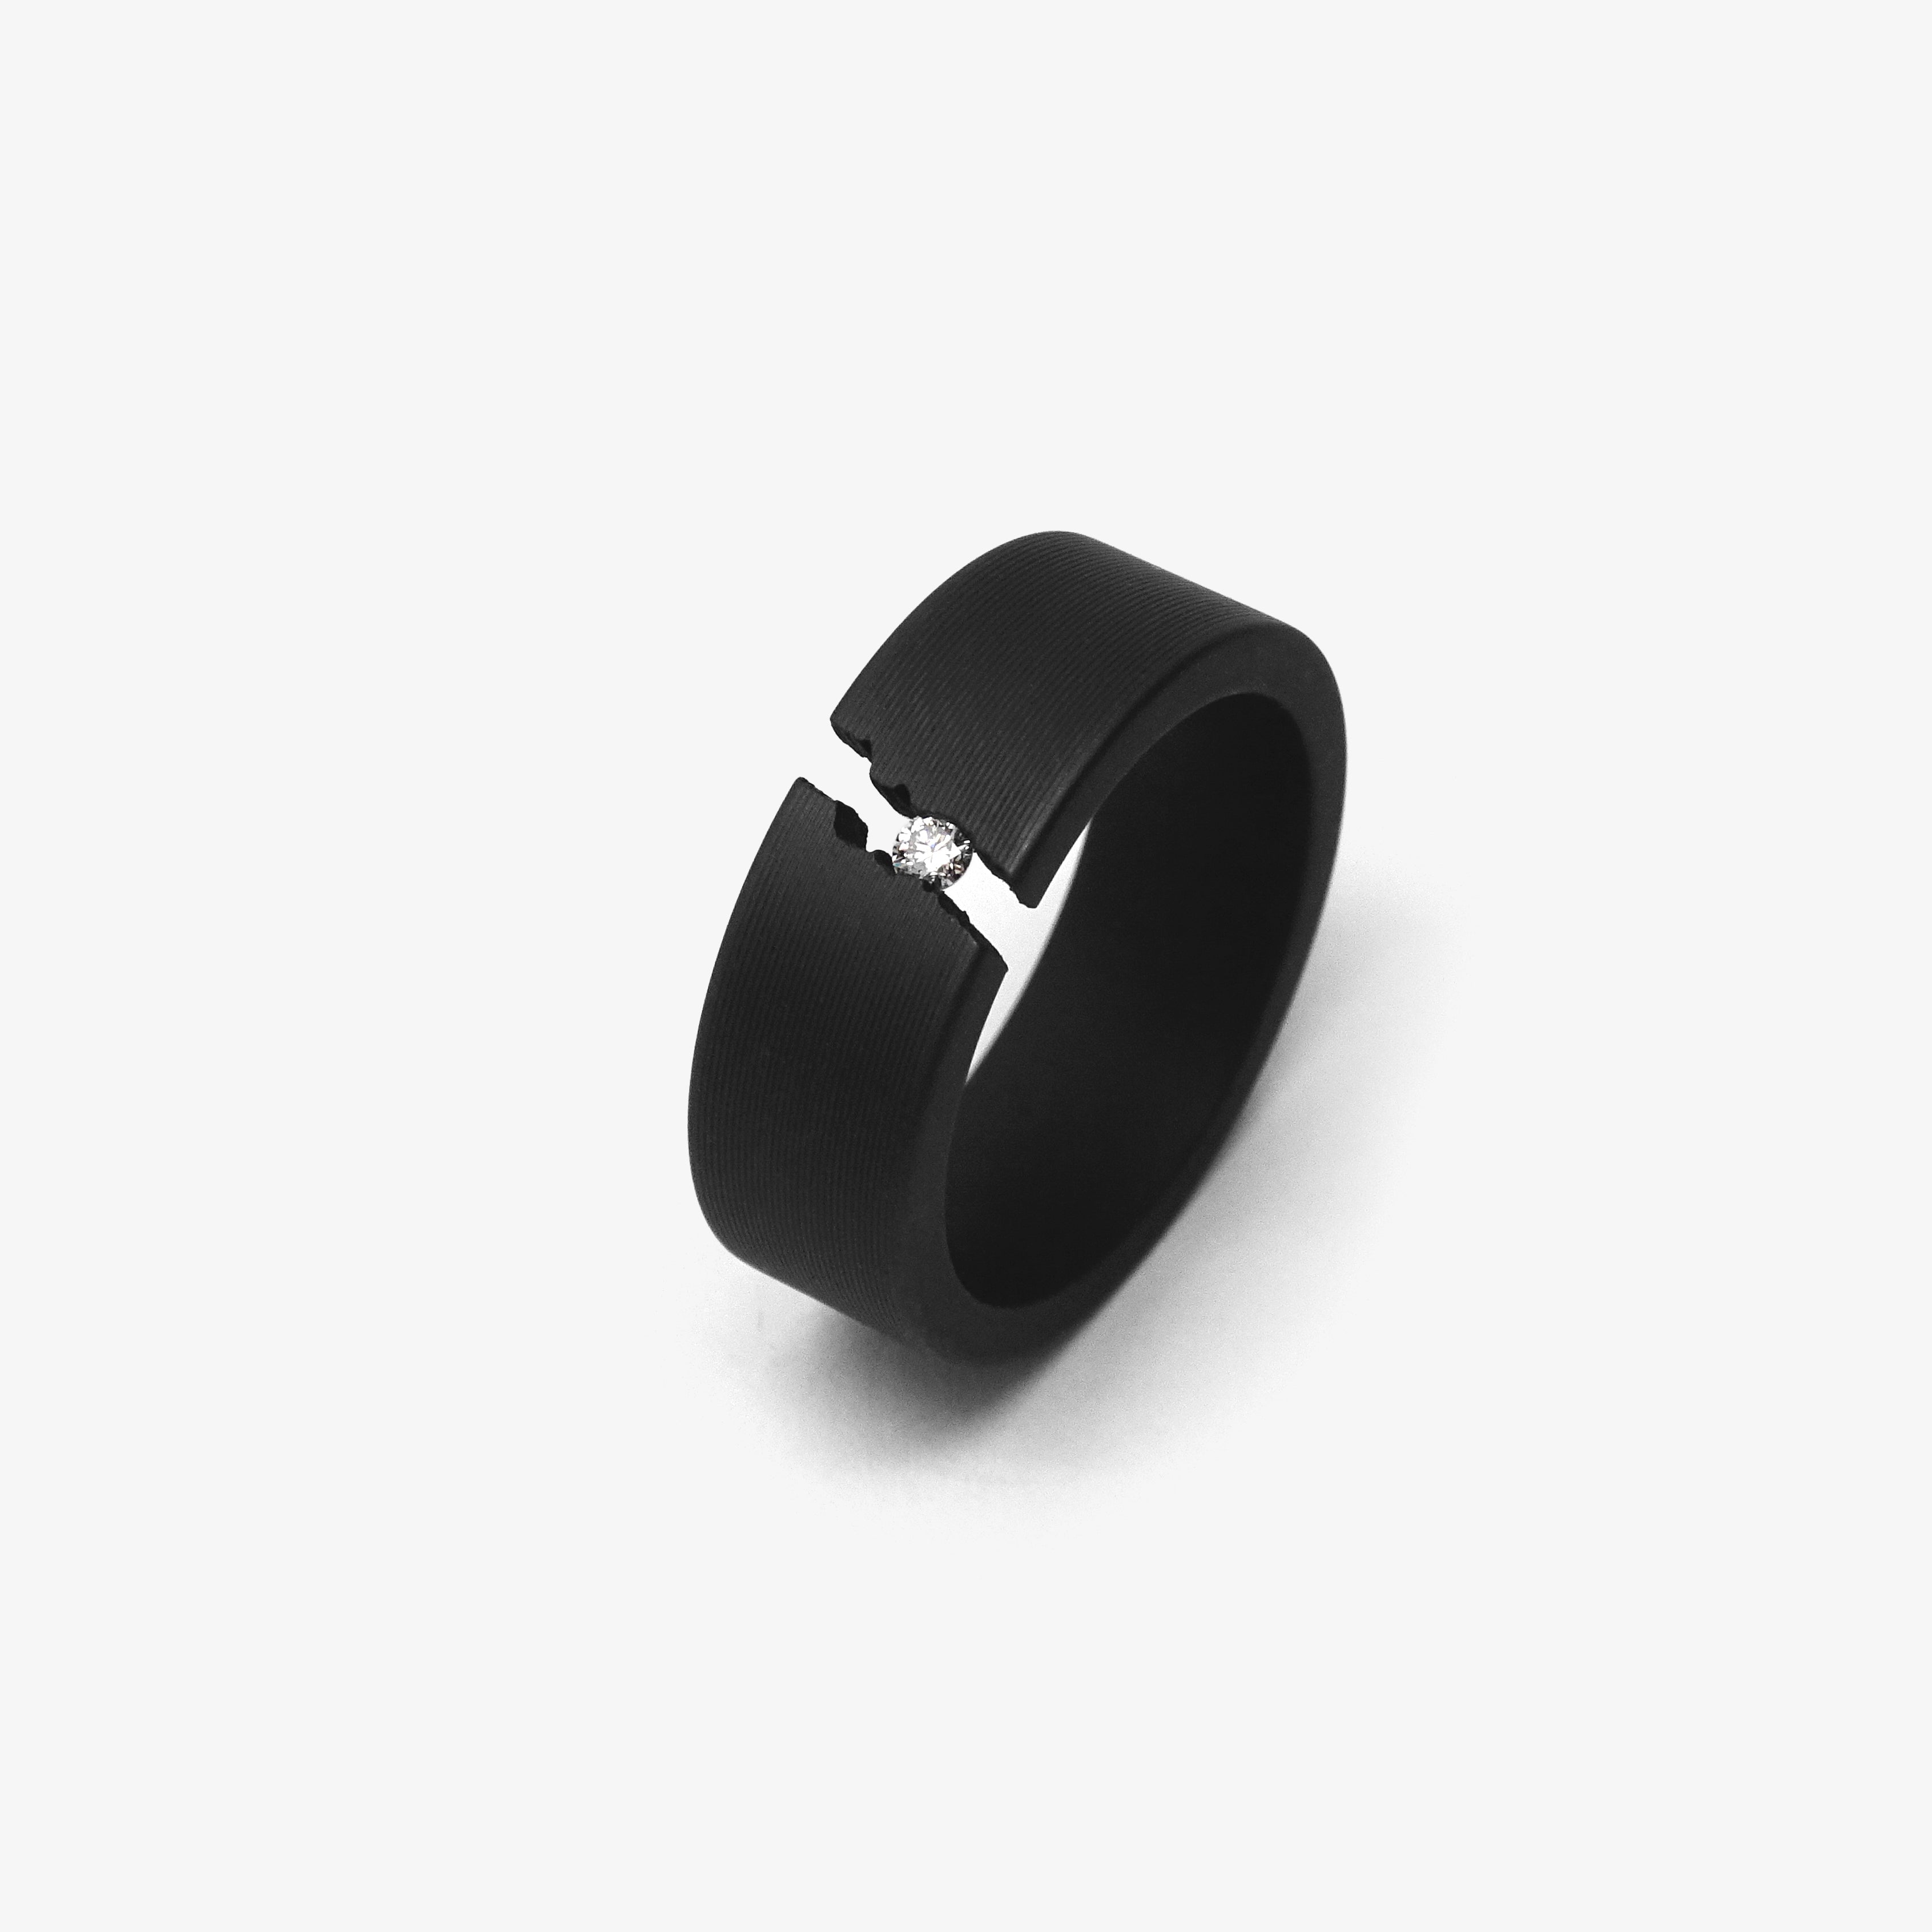 NARROW BLACK CRACKLE RING + 1 DIAMOND